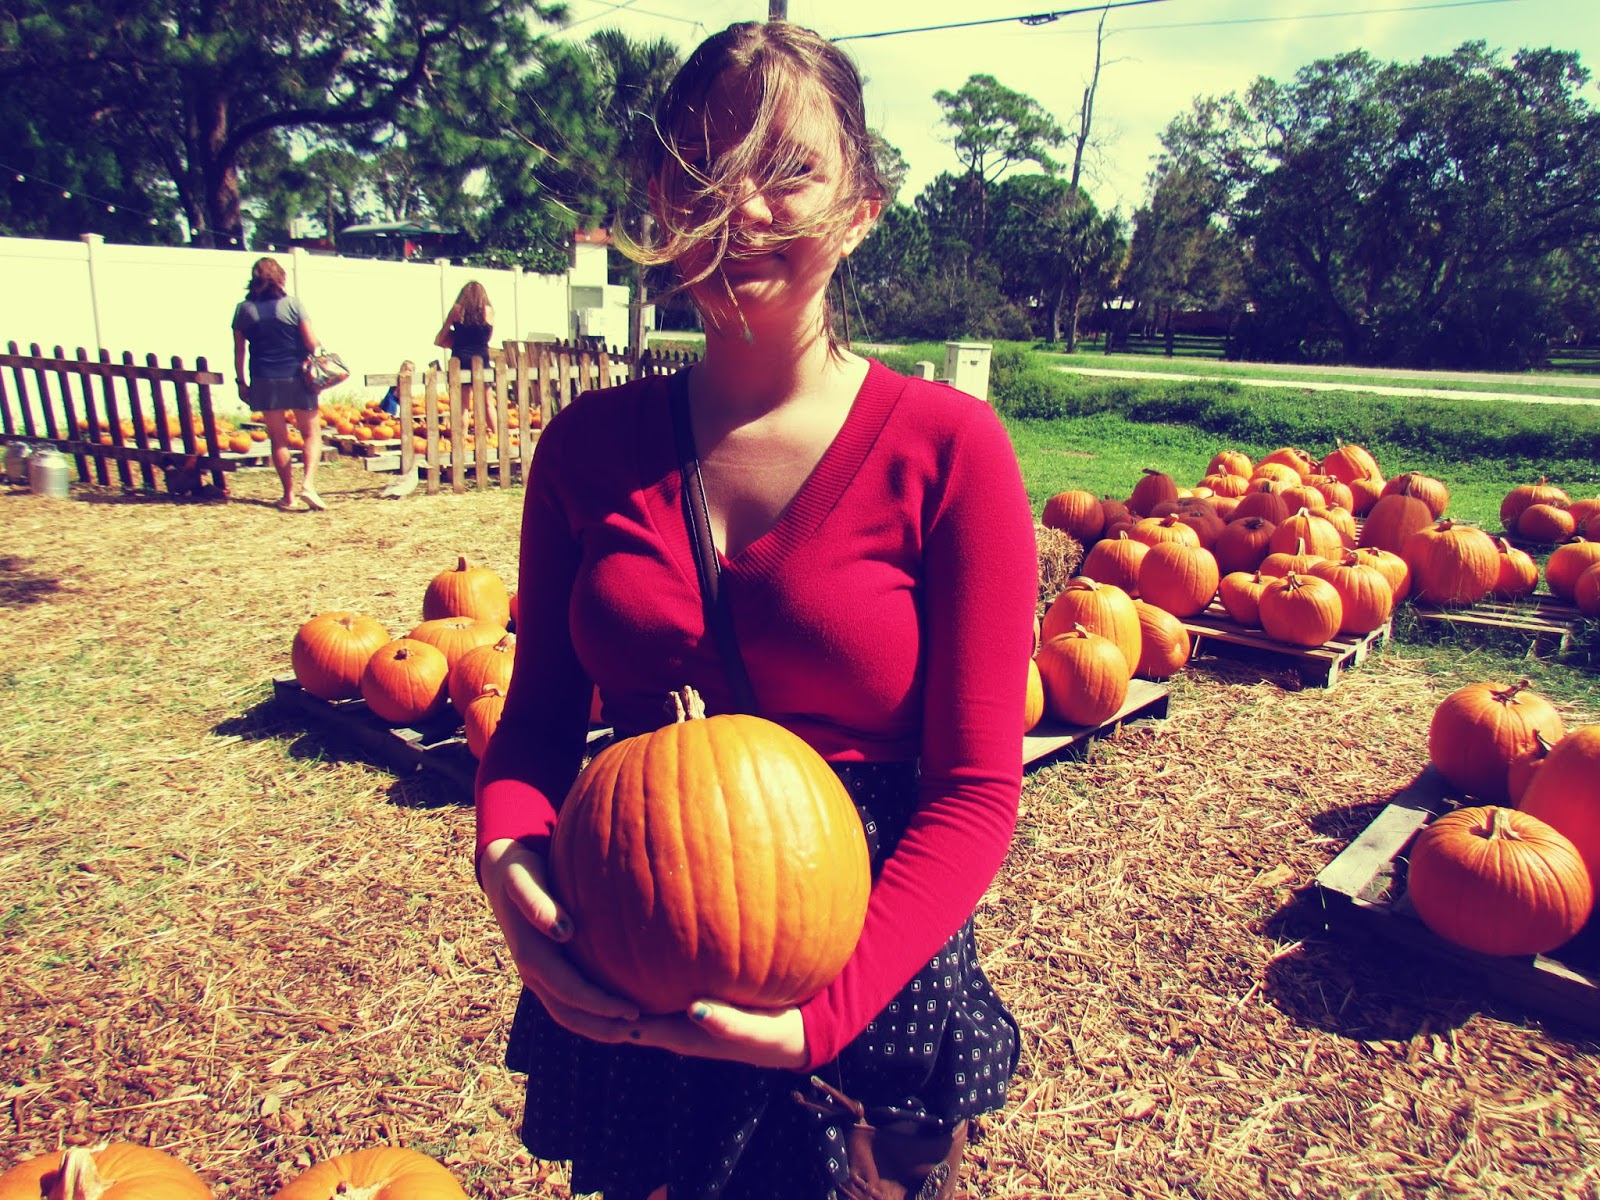 A young girl wearing lucky red sweater gathering pumpkins at a pumpkin patch ready for the fal seasonal shift